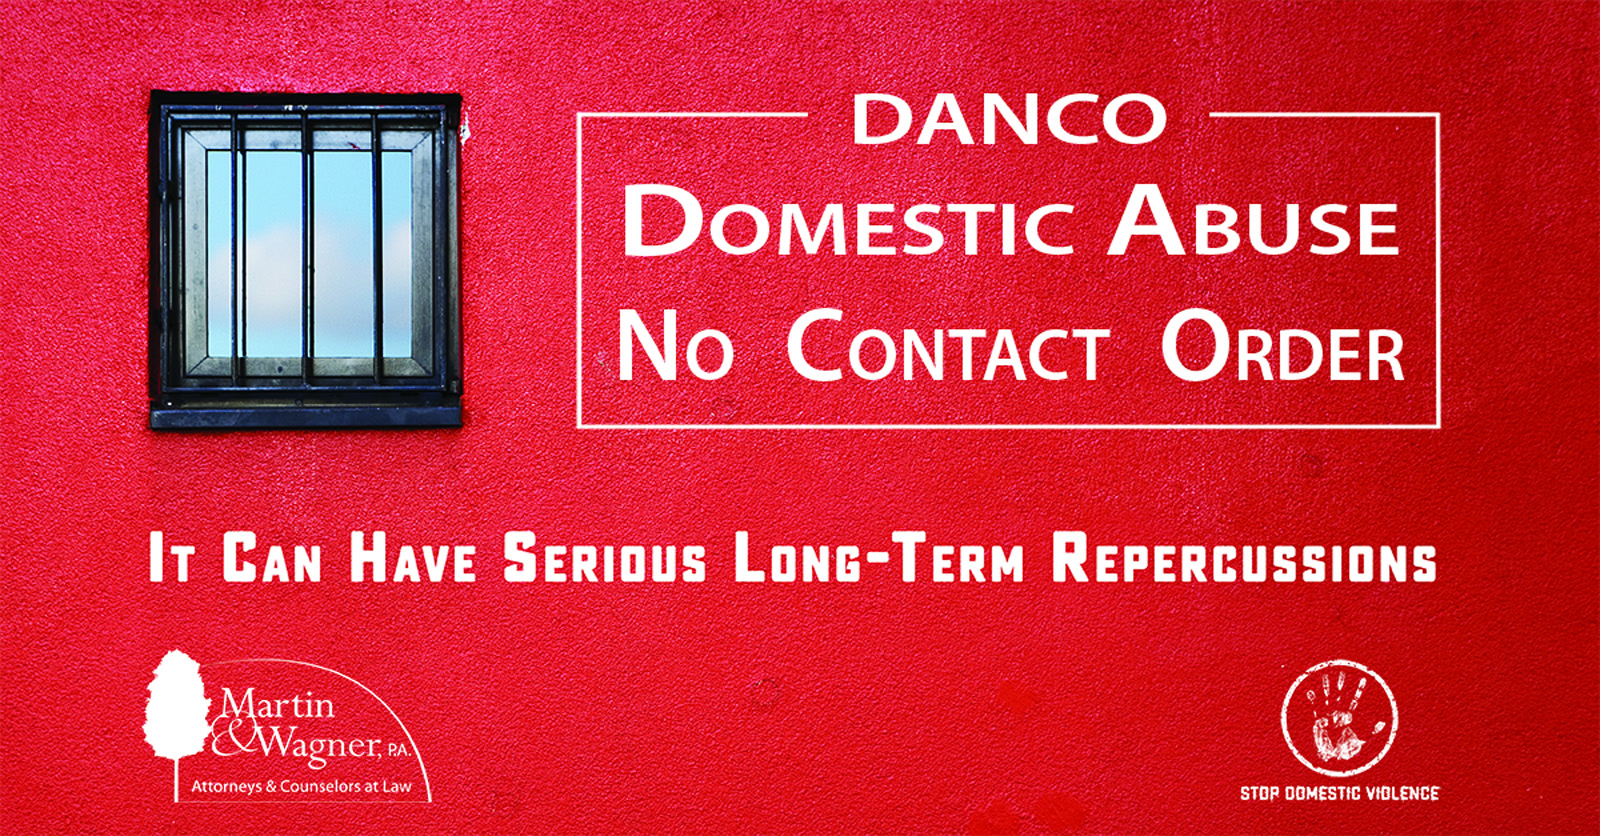 Domestic Abuse No Contact Order [DANCO] - Martin & Wagner Law